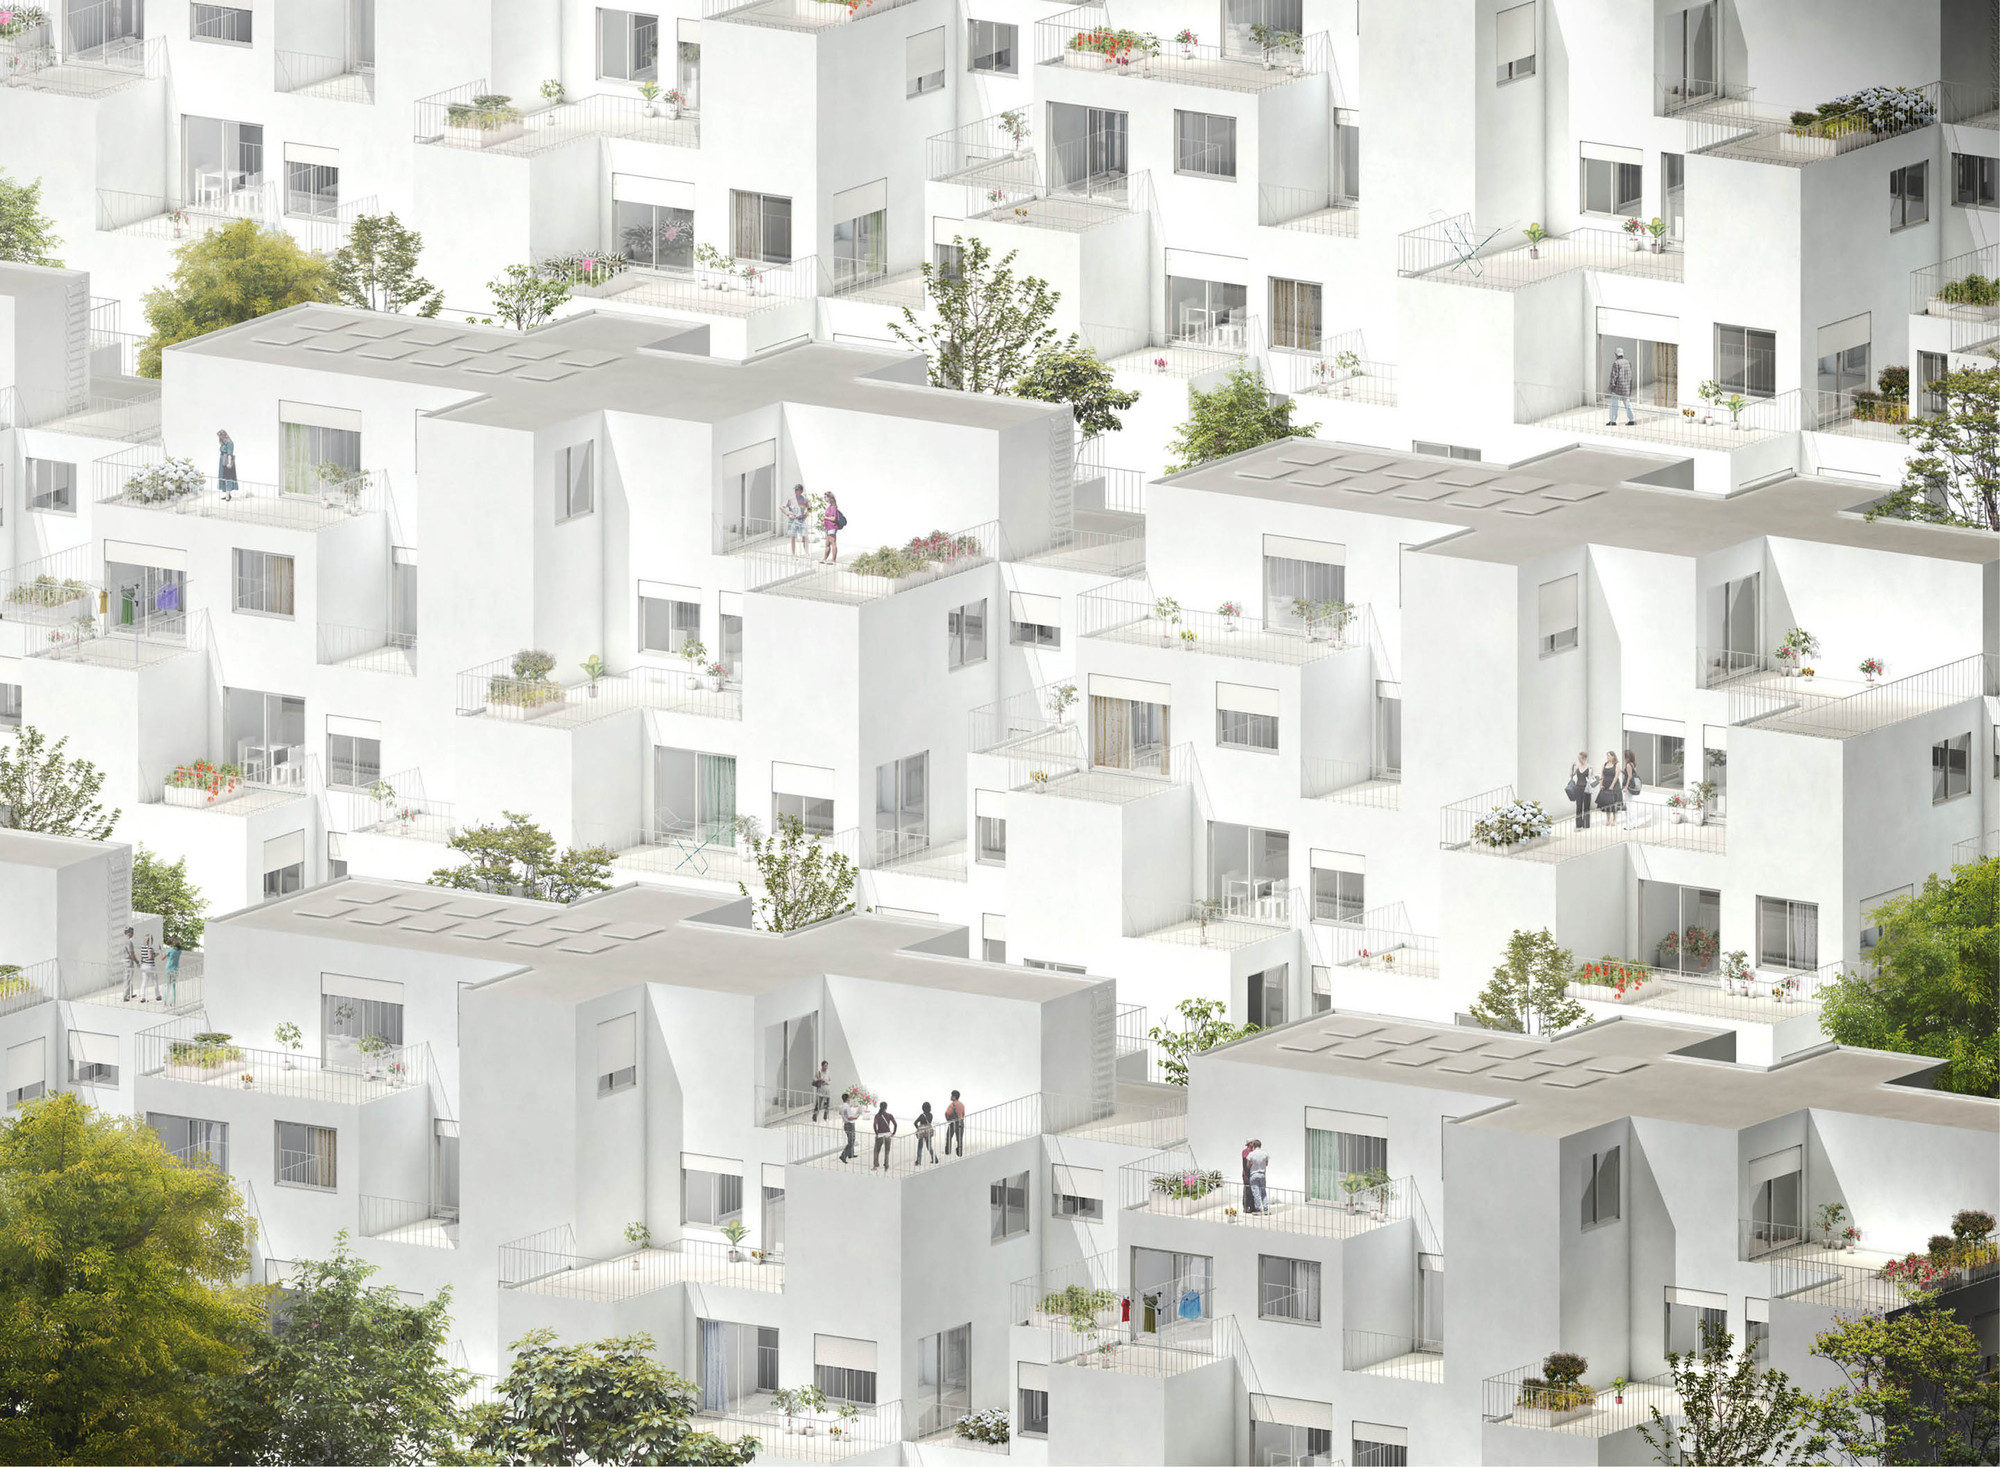 Alvenaria Social Housing Competition Entry / fala atelier, Courtesy of fala atelier